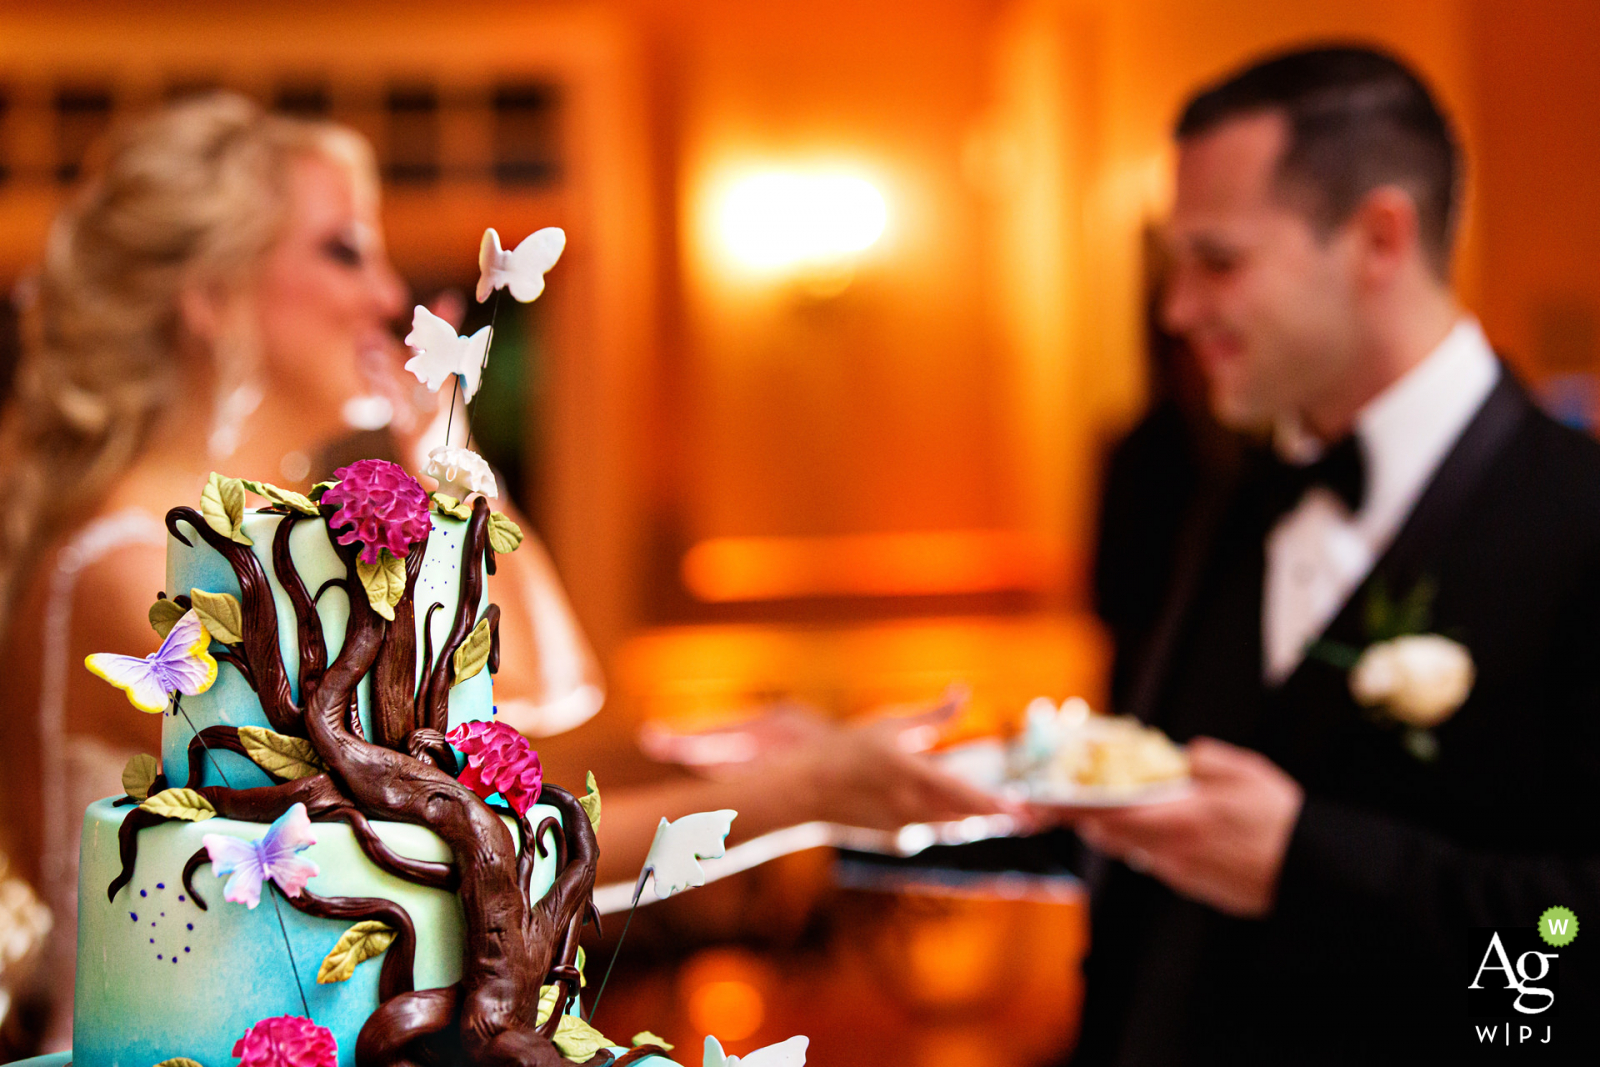 Bear Brook Valley New Jersey Wedding Venue Detail Photo of the Cake Cutting with the Bride and Groom